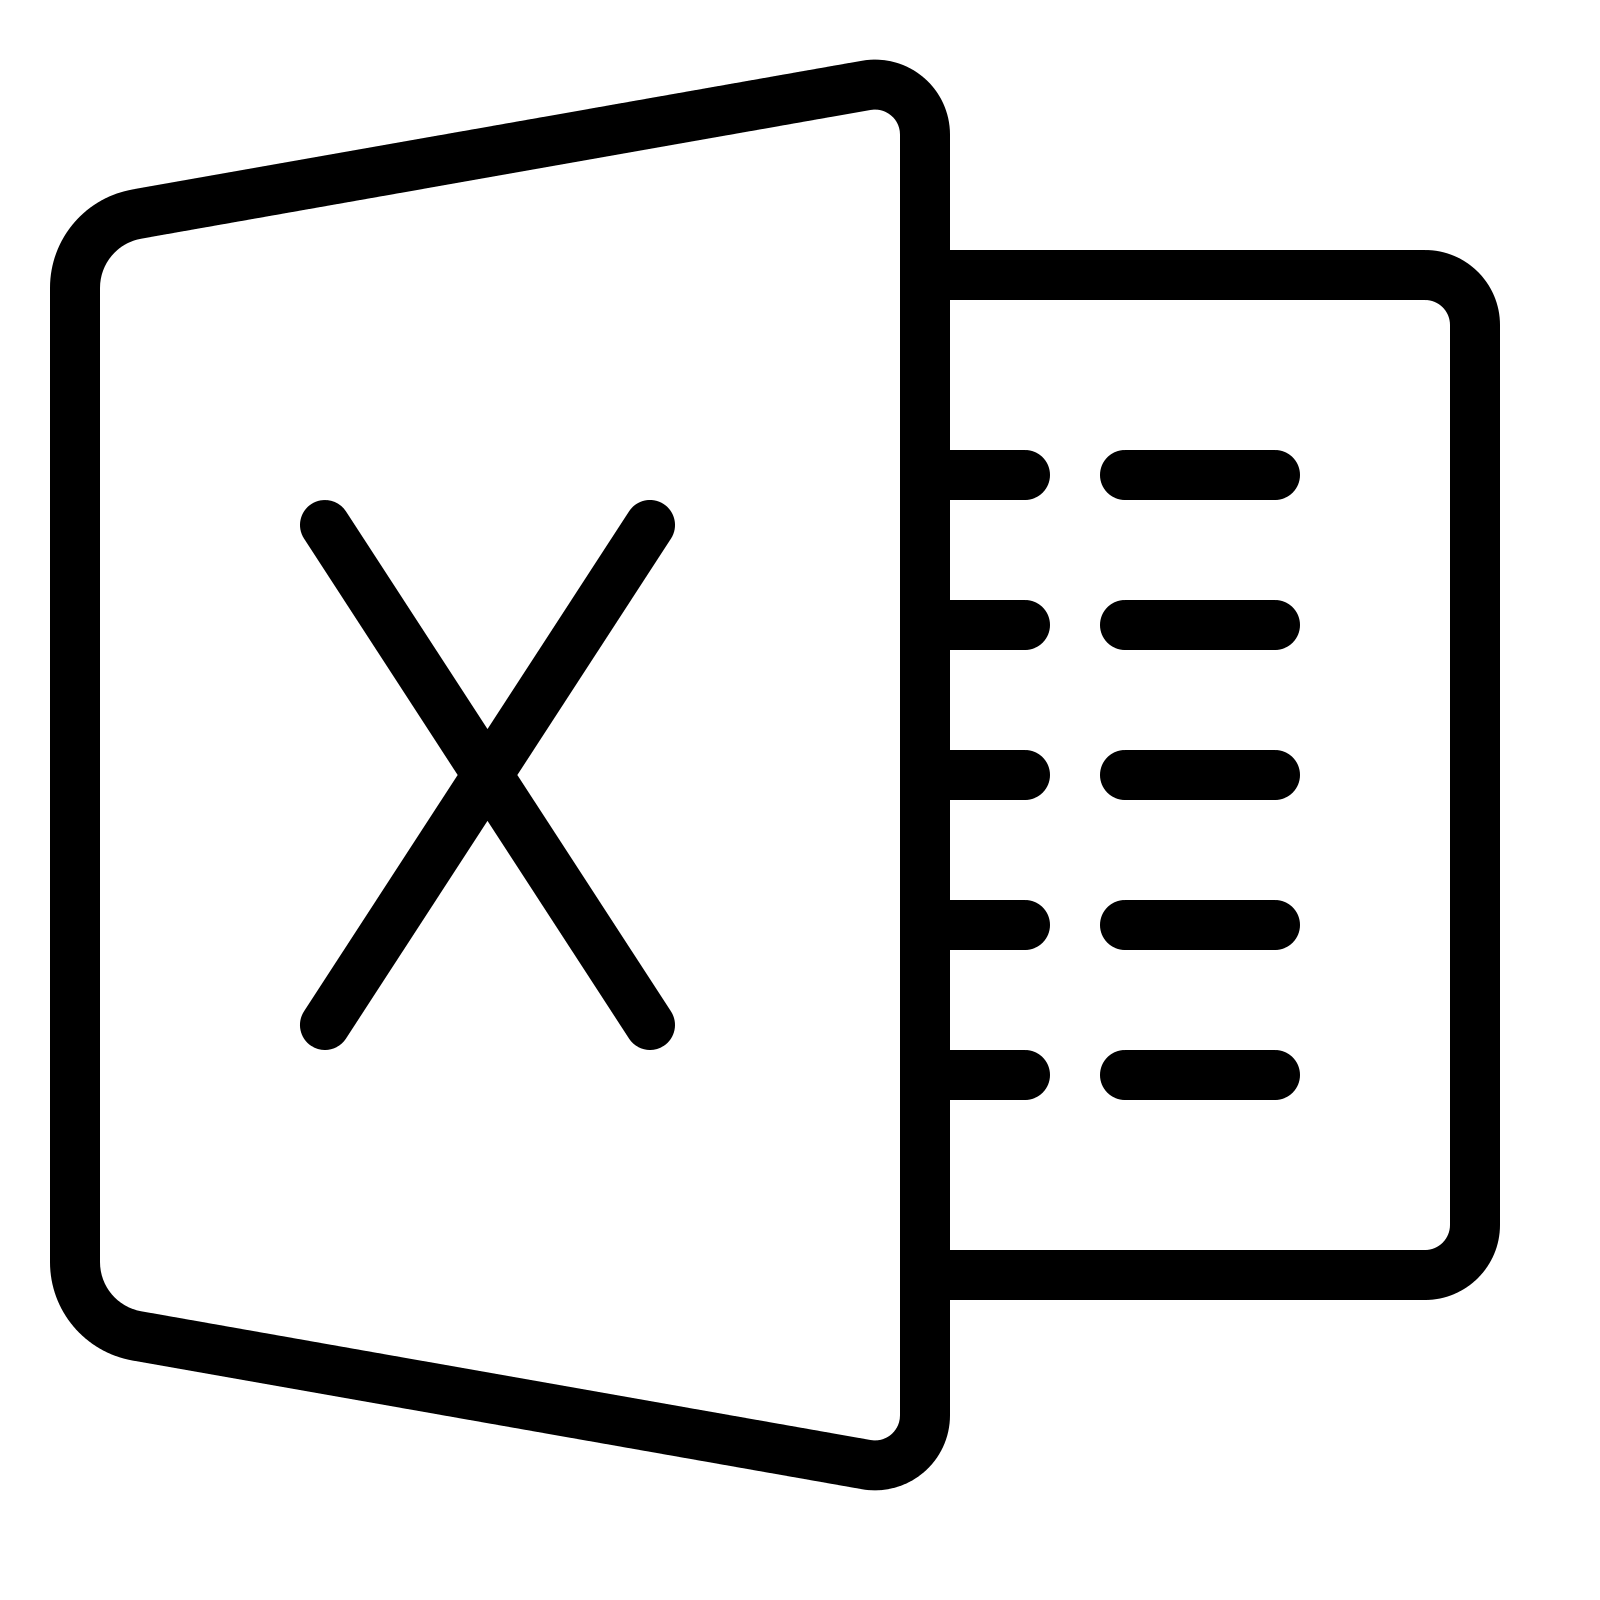 Large Excel Table Outline Clipart Black And White 20 Free